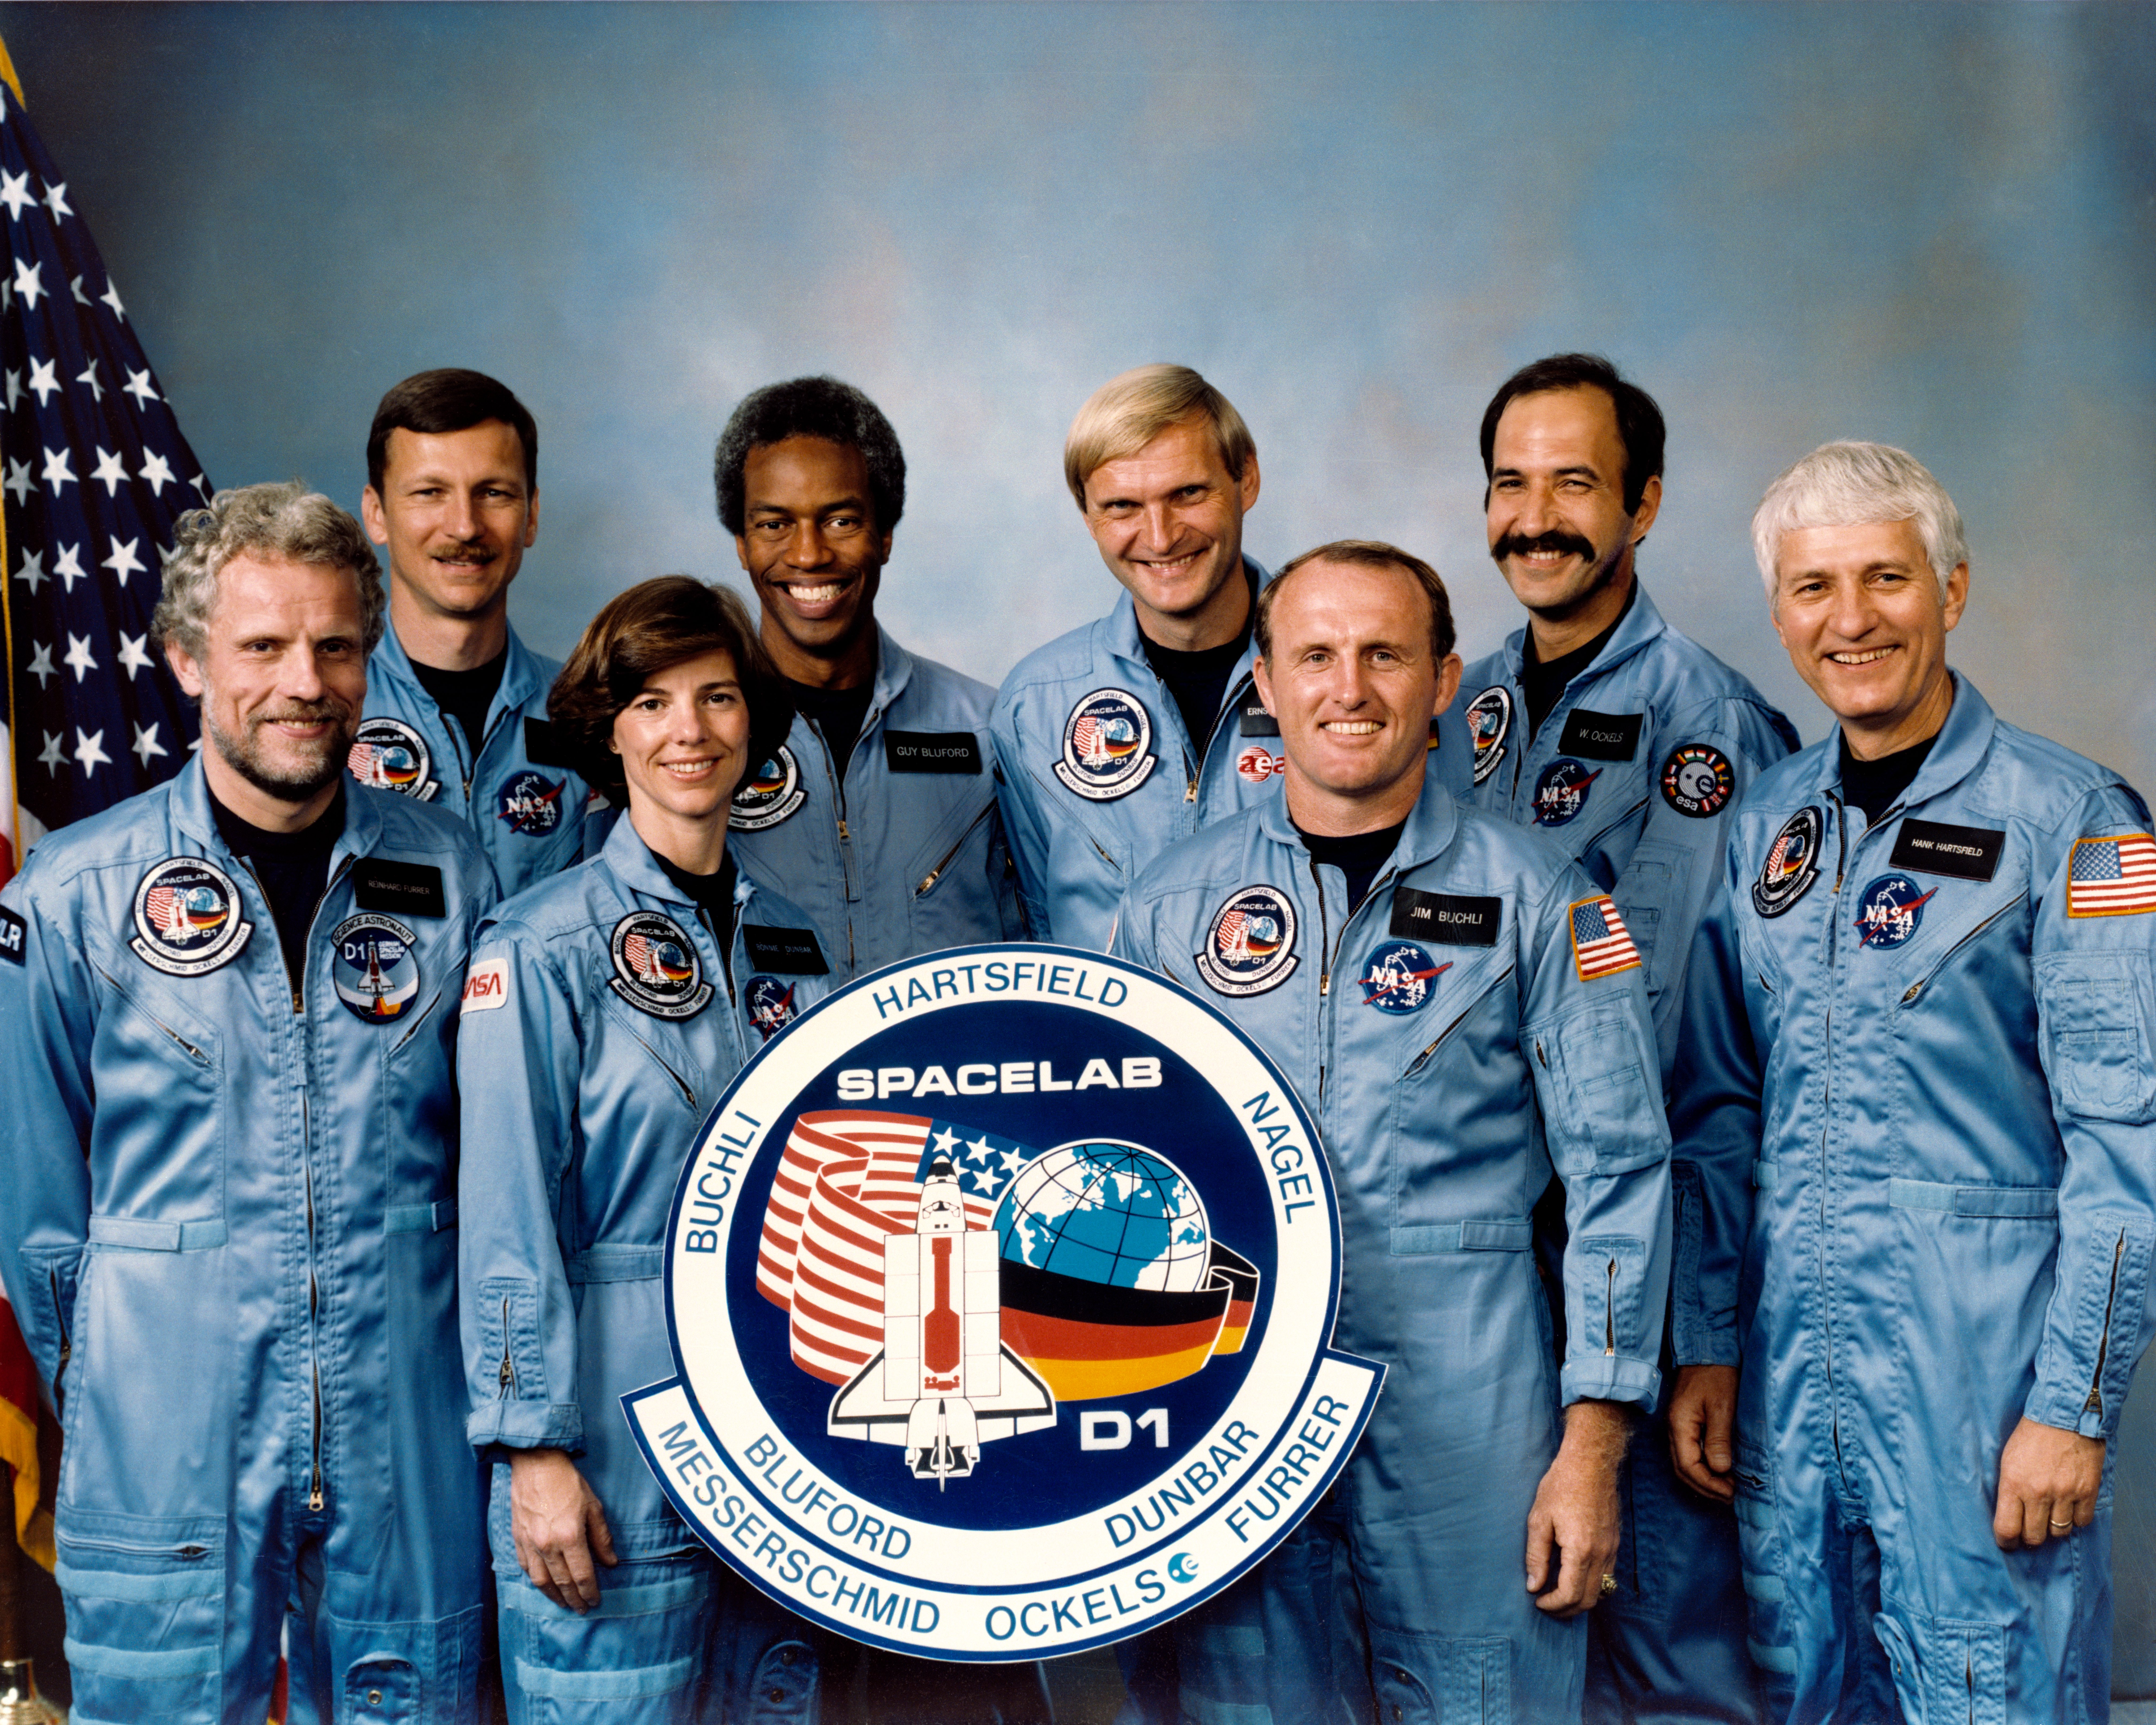 """""""The Earth-orbiting space shuttle Challenger beyond the ..."""